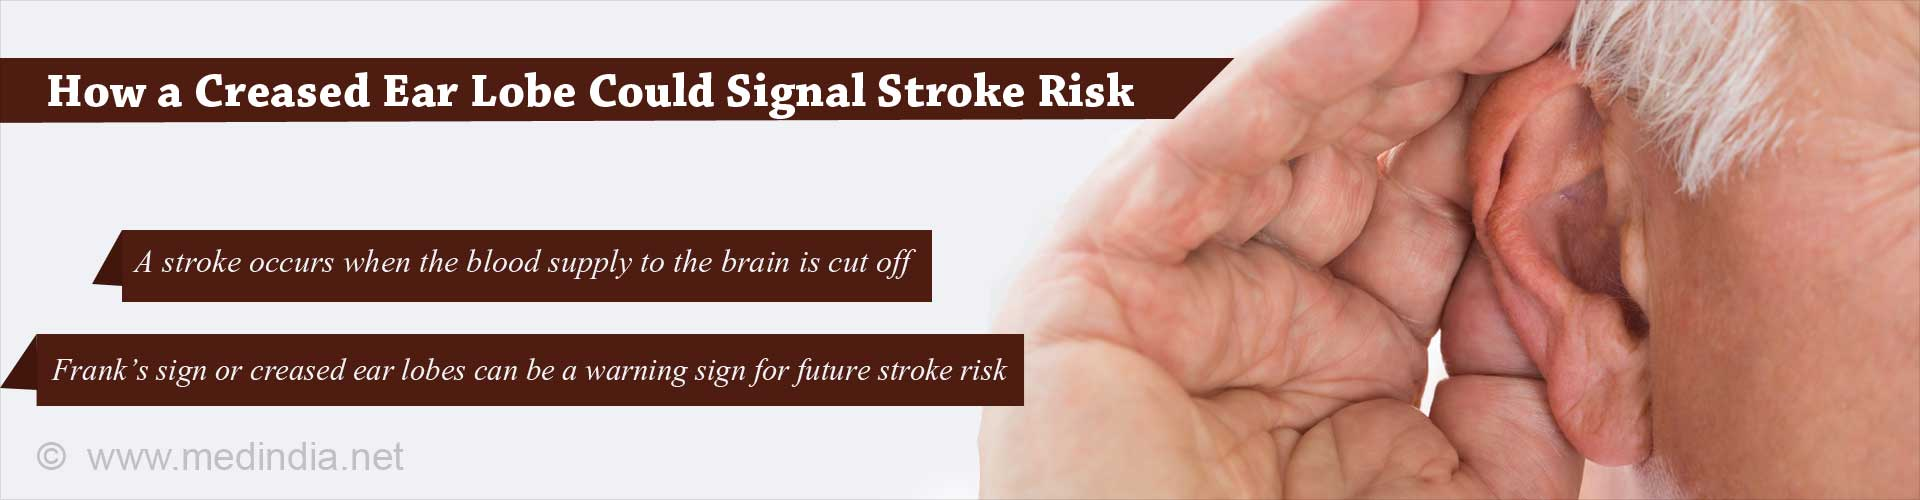 Can a Creased Ear Lobe Predict the Risk of Stroke